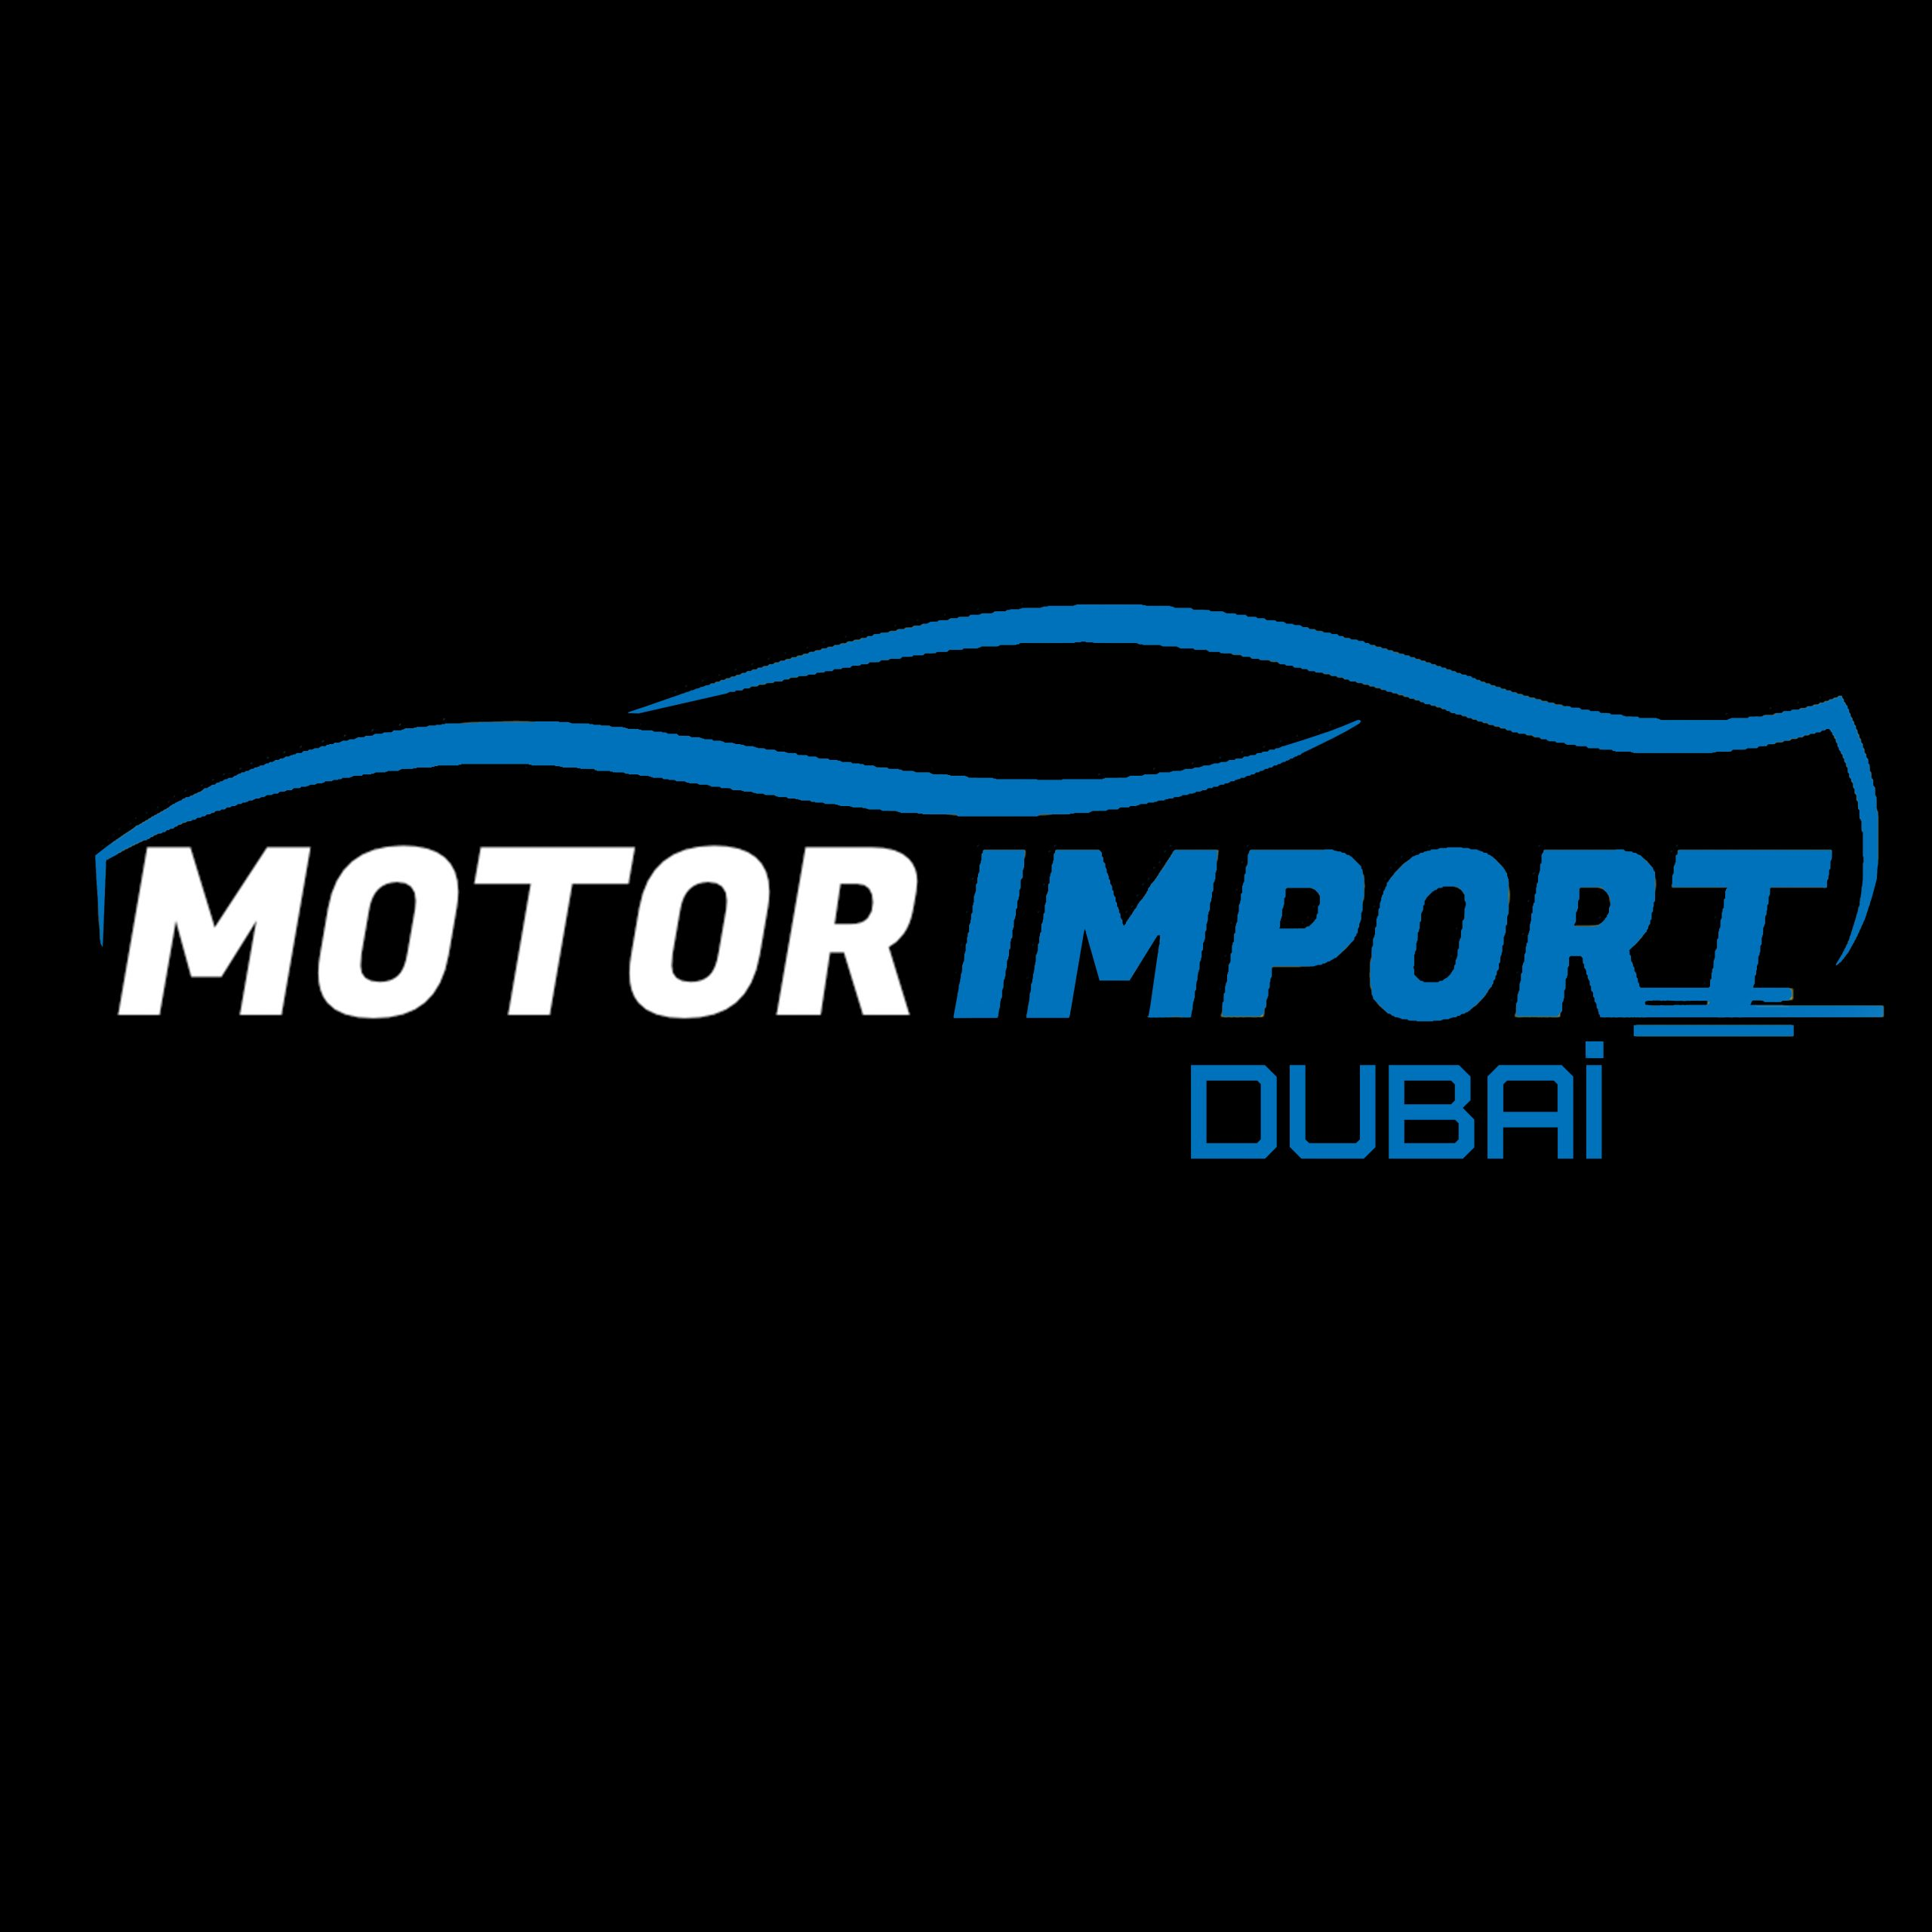 SQUARE EMPTYMOTOR IMPORT DUBAI scaled - ROLLS-ROYCE DUBAI importation voiture Dubai ROLLS-ROYCE importation vehicule emirats arabe unis motorimport